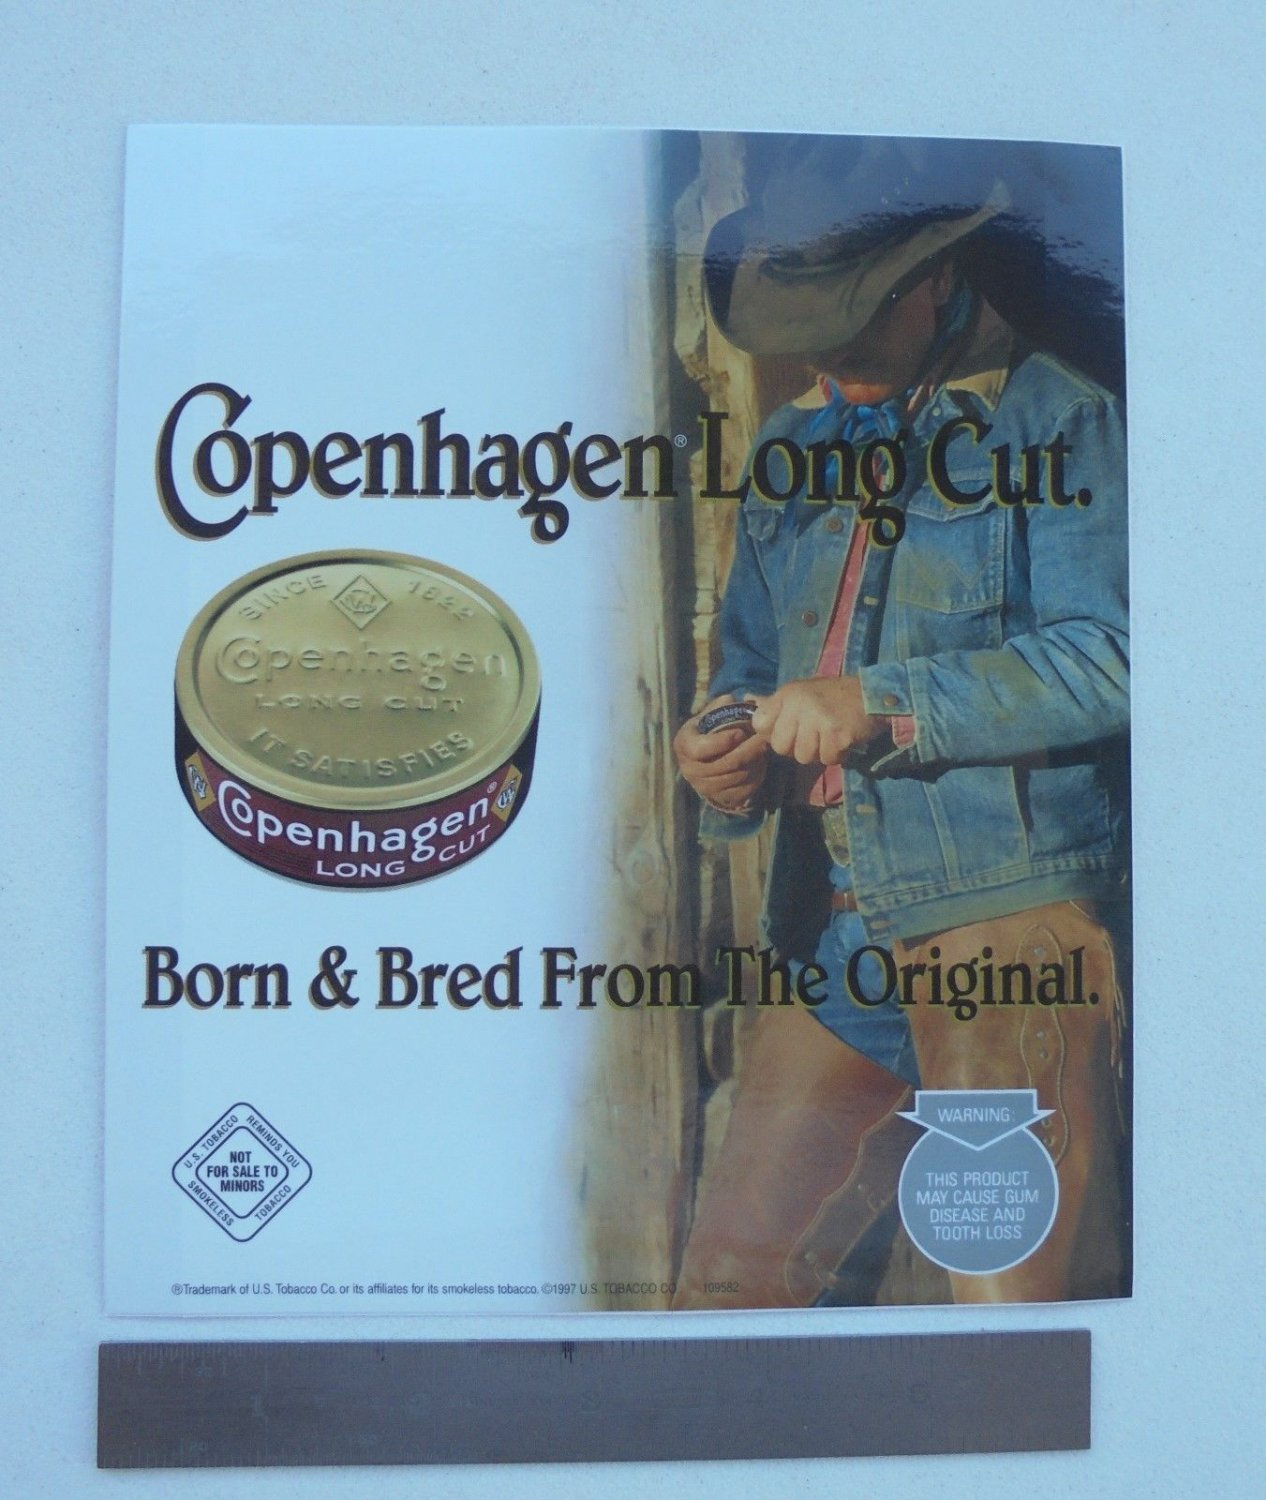 COPENHAGEN LONG CUT DOOR DECAL W/COWBOY